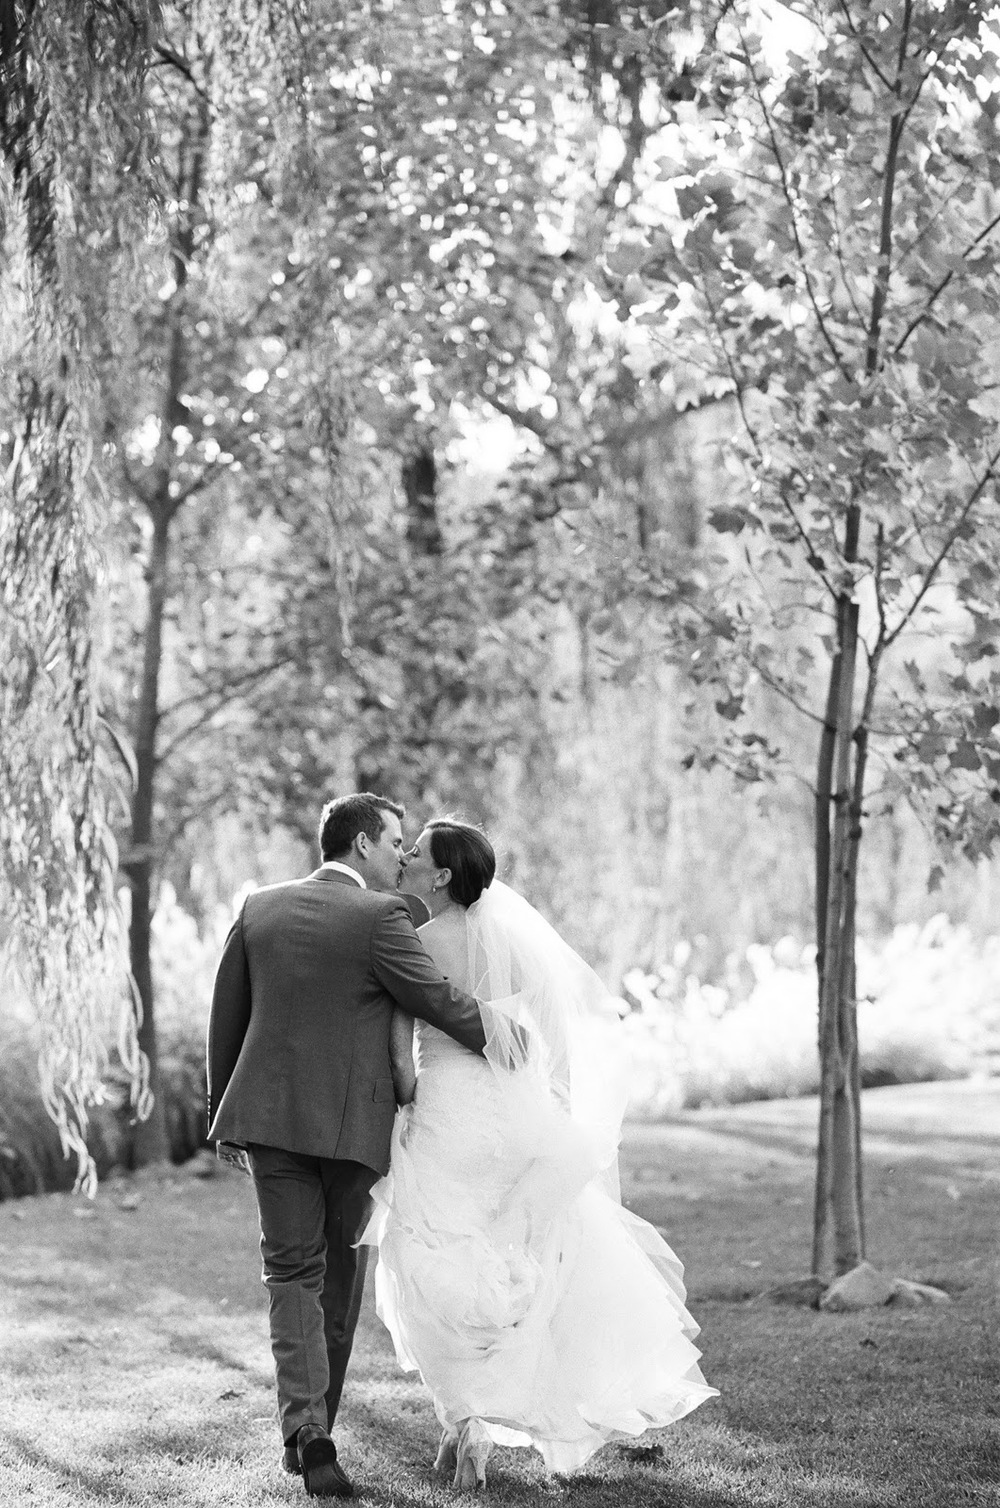 sylvie-gil-film-photography-wedding-bride-groom-black-white-swan-lake-napa